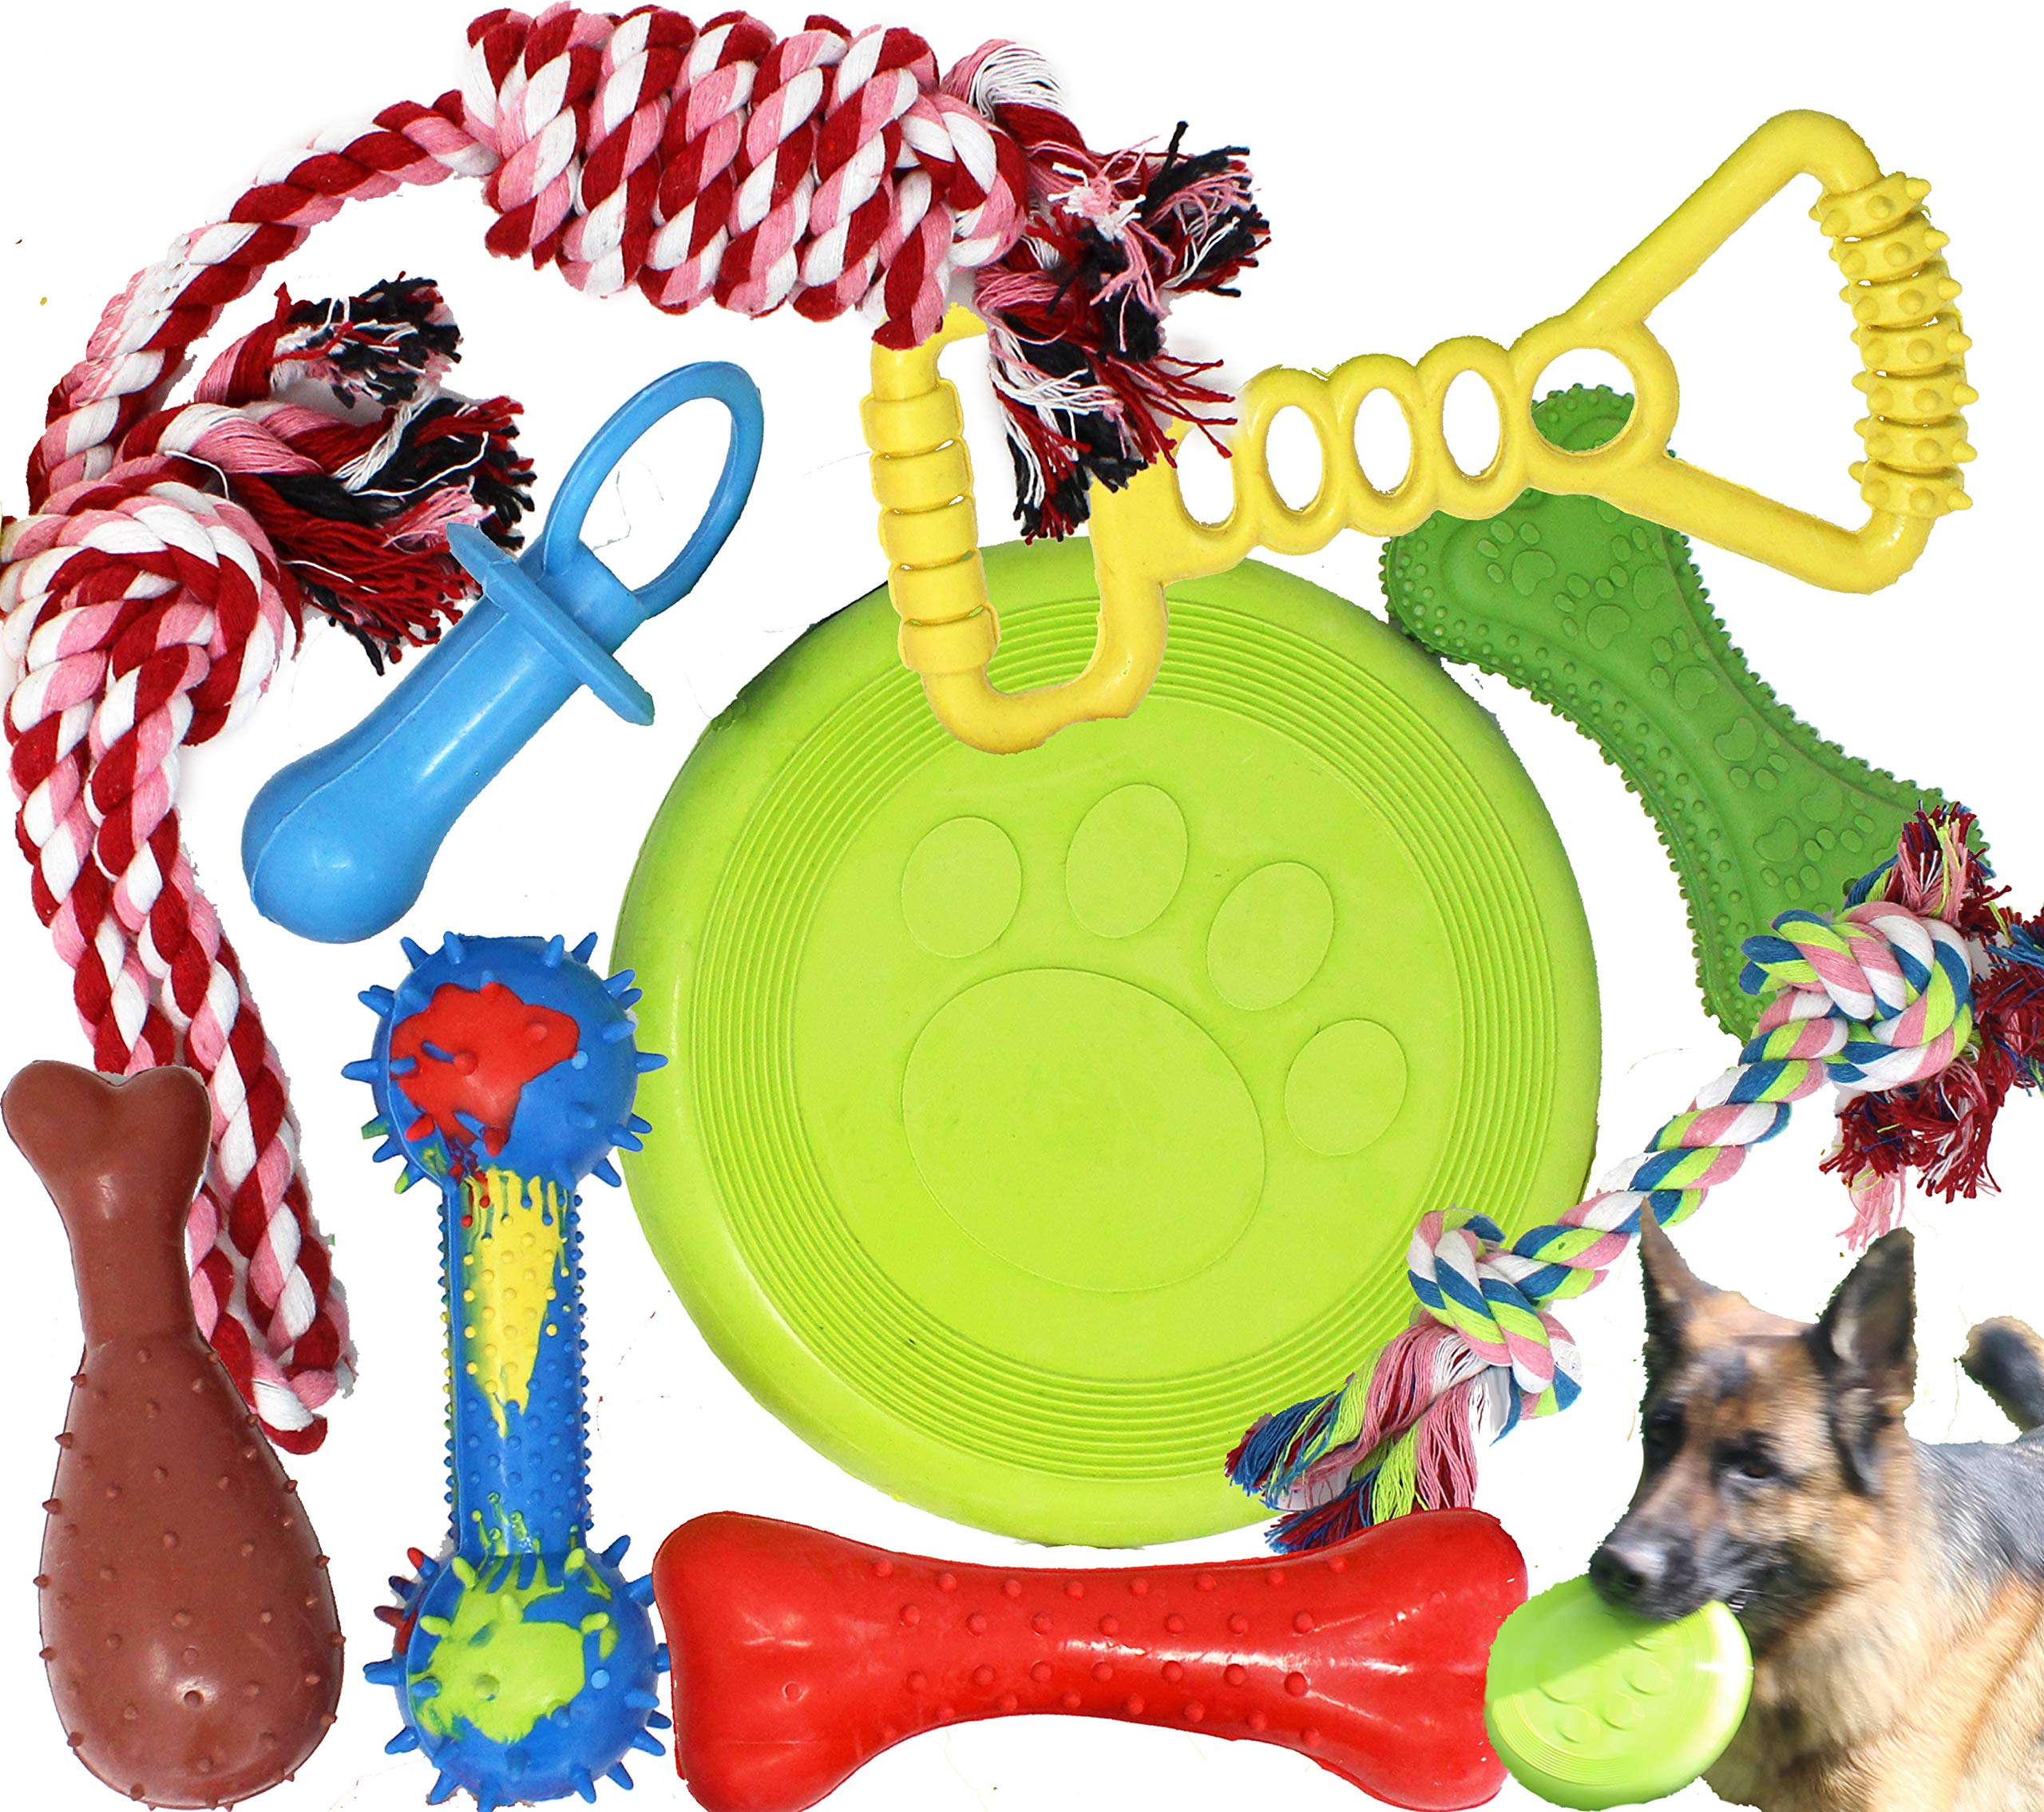 Jalousie Chew Toy Natural Rubber chew Toy for Interactive Play Toy Ball Rope Rubber Value Set for Small to Medium Breed Dog mutt Puppy by Jalousie